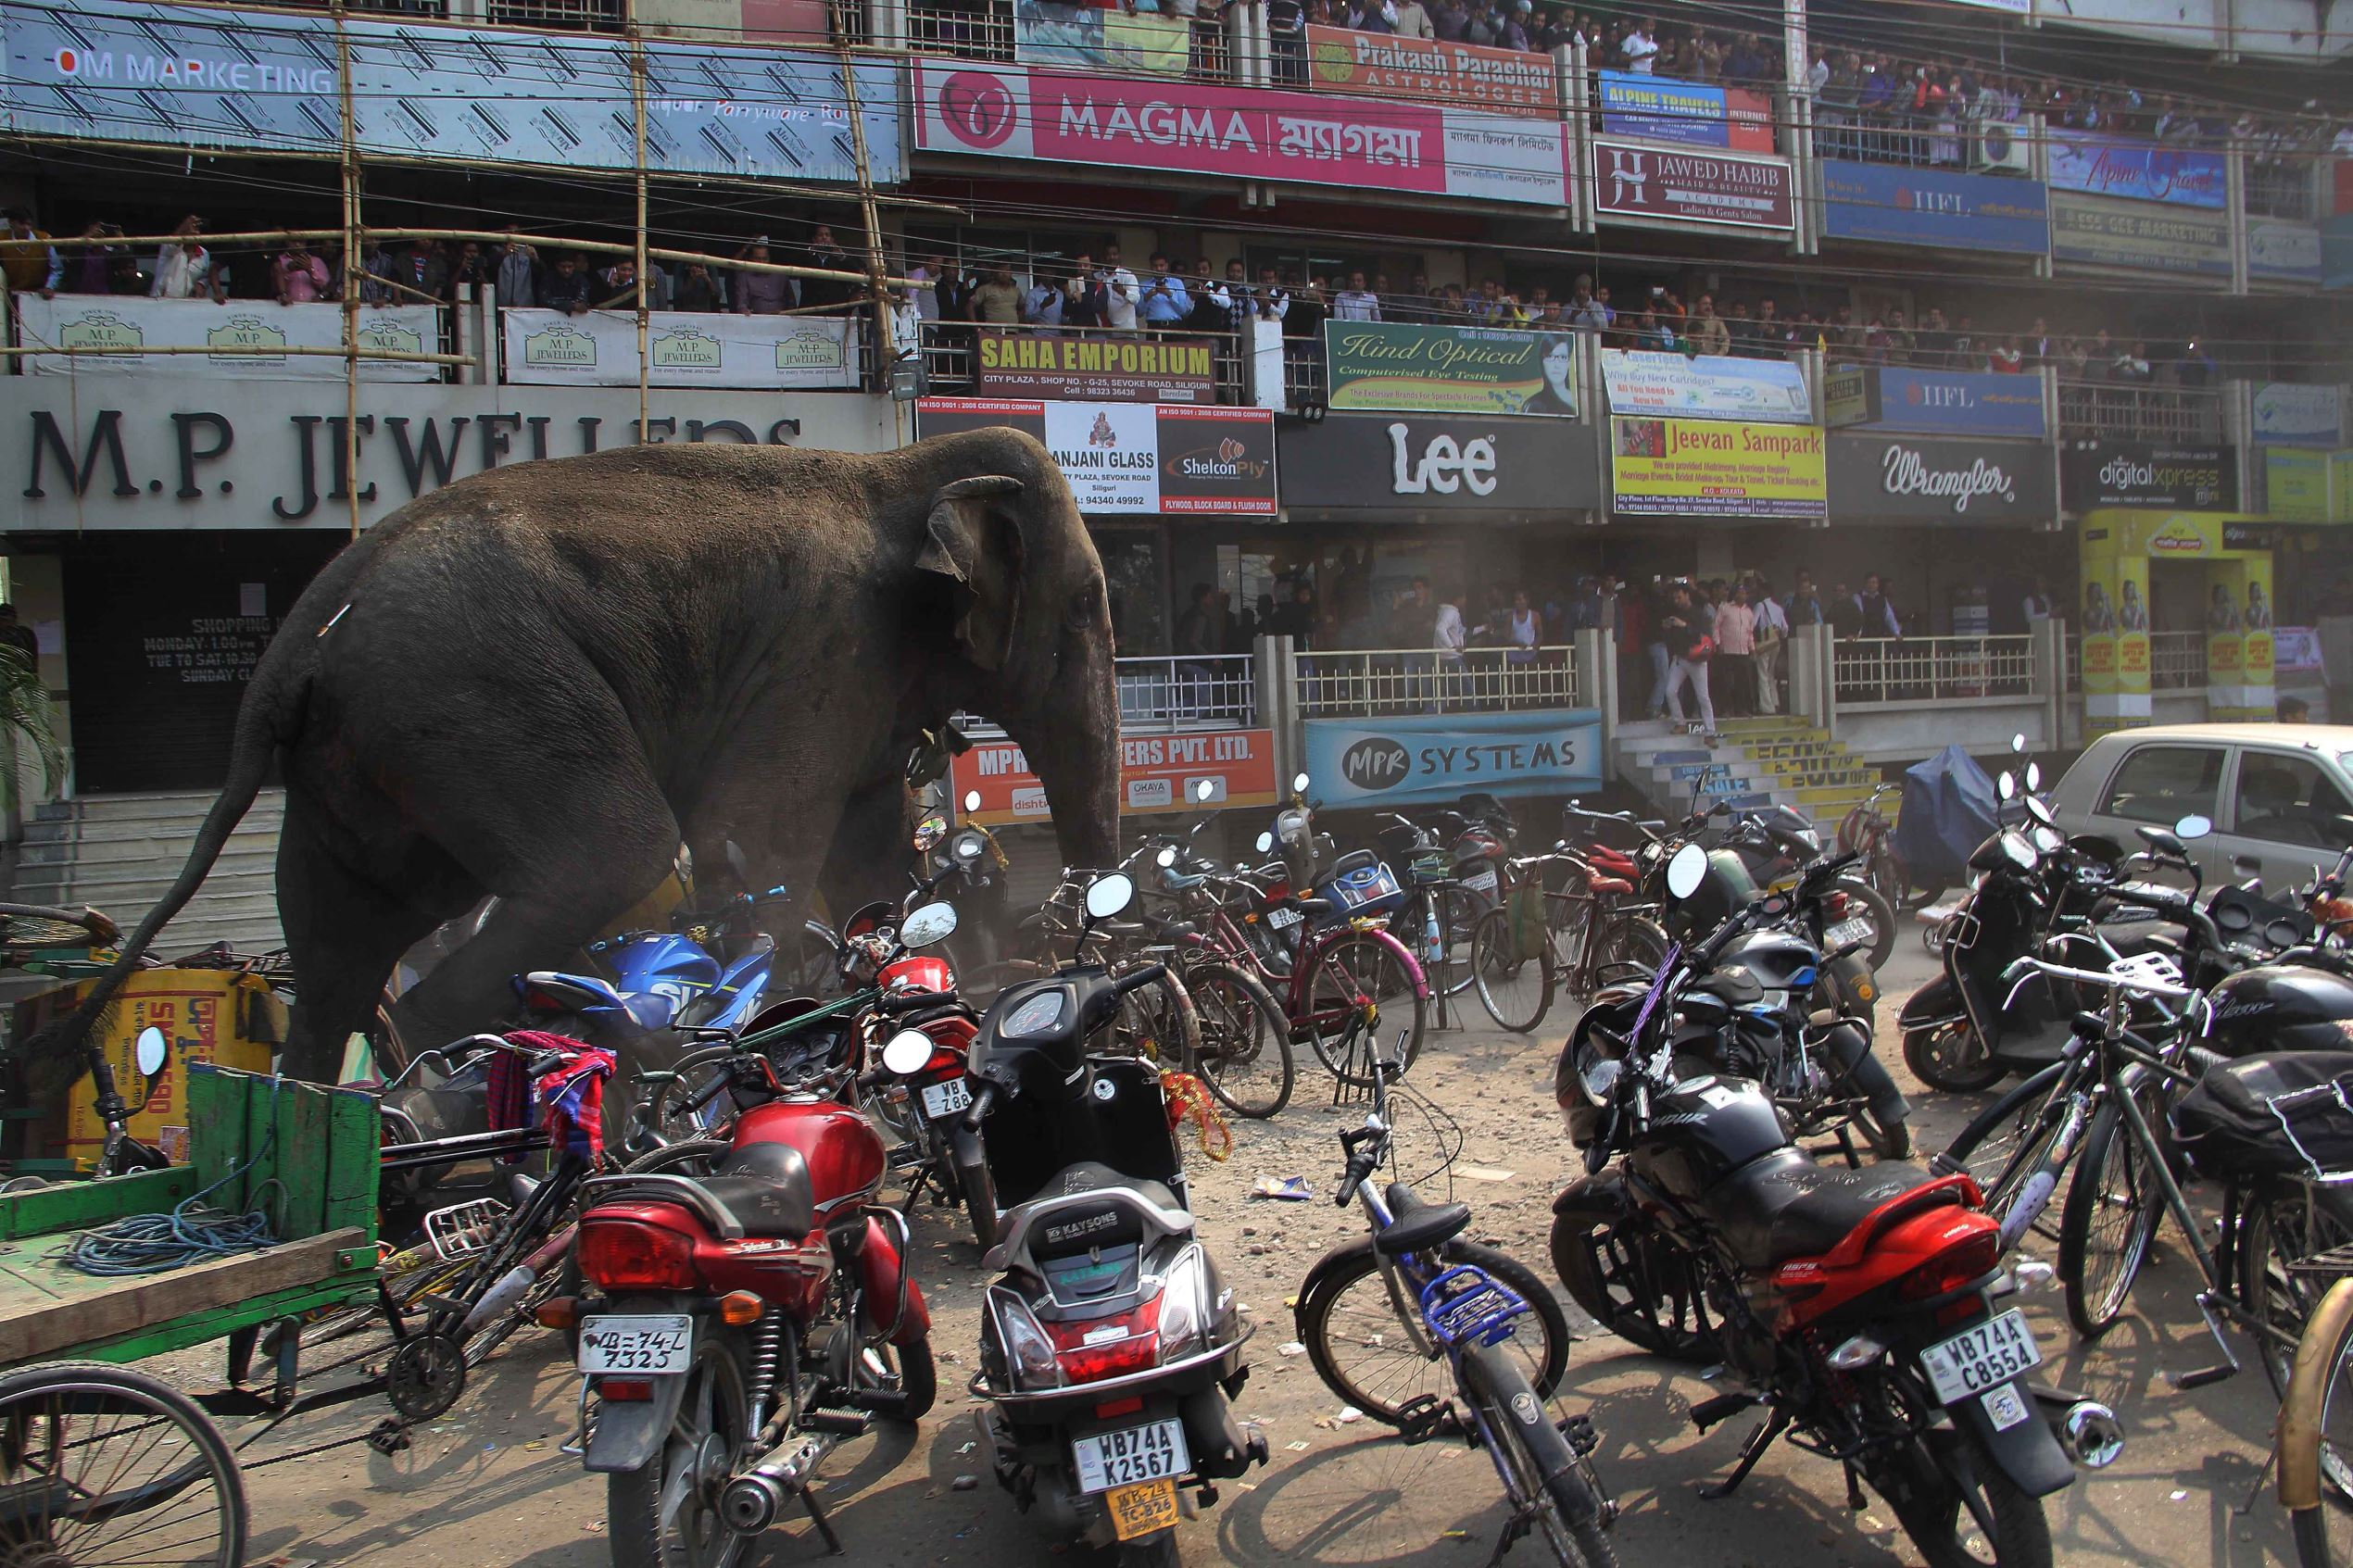 Слайд 54 из 67: A wild elephant that strayed into the town stands after authorities shot it with a tranquilizer gun at Siliguri in West Bengal state, India, Wednesday, Feb. 10, 2016. The elephant had wandered from the Baikunthapur forest on Wednesday, crossing roads and